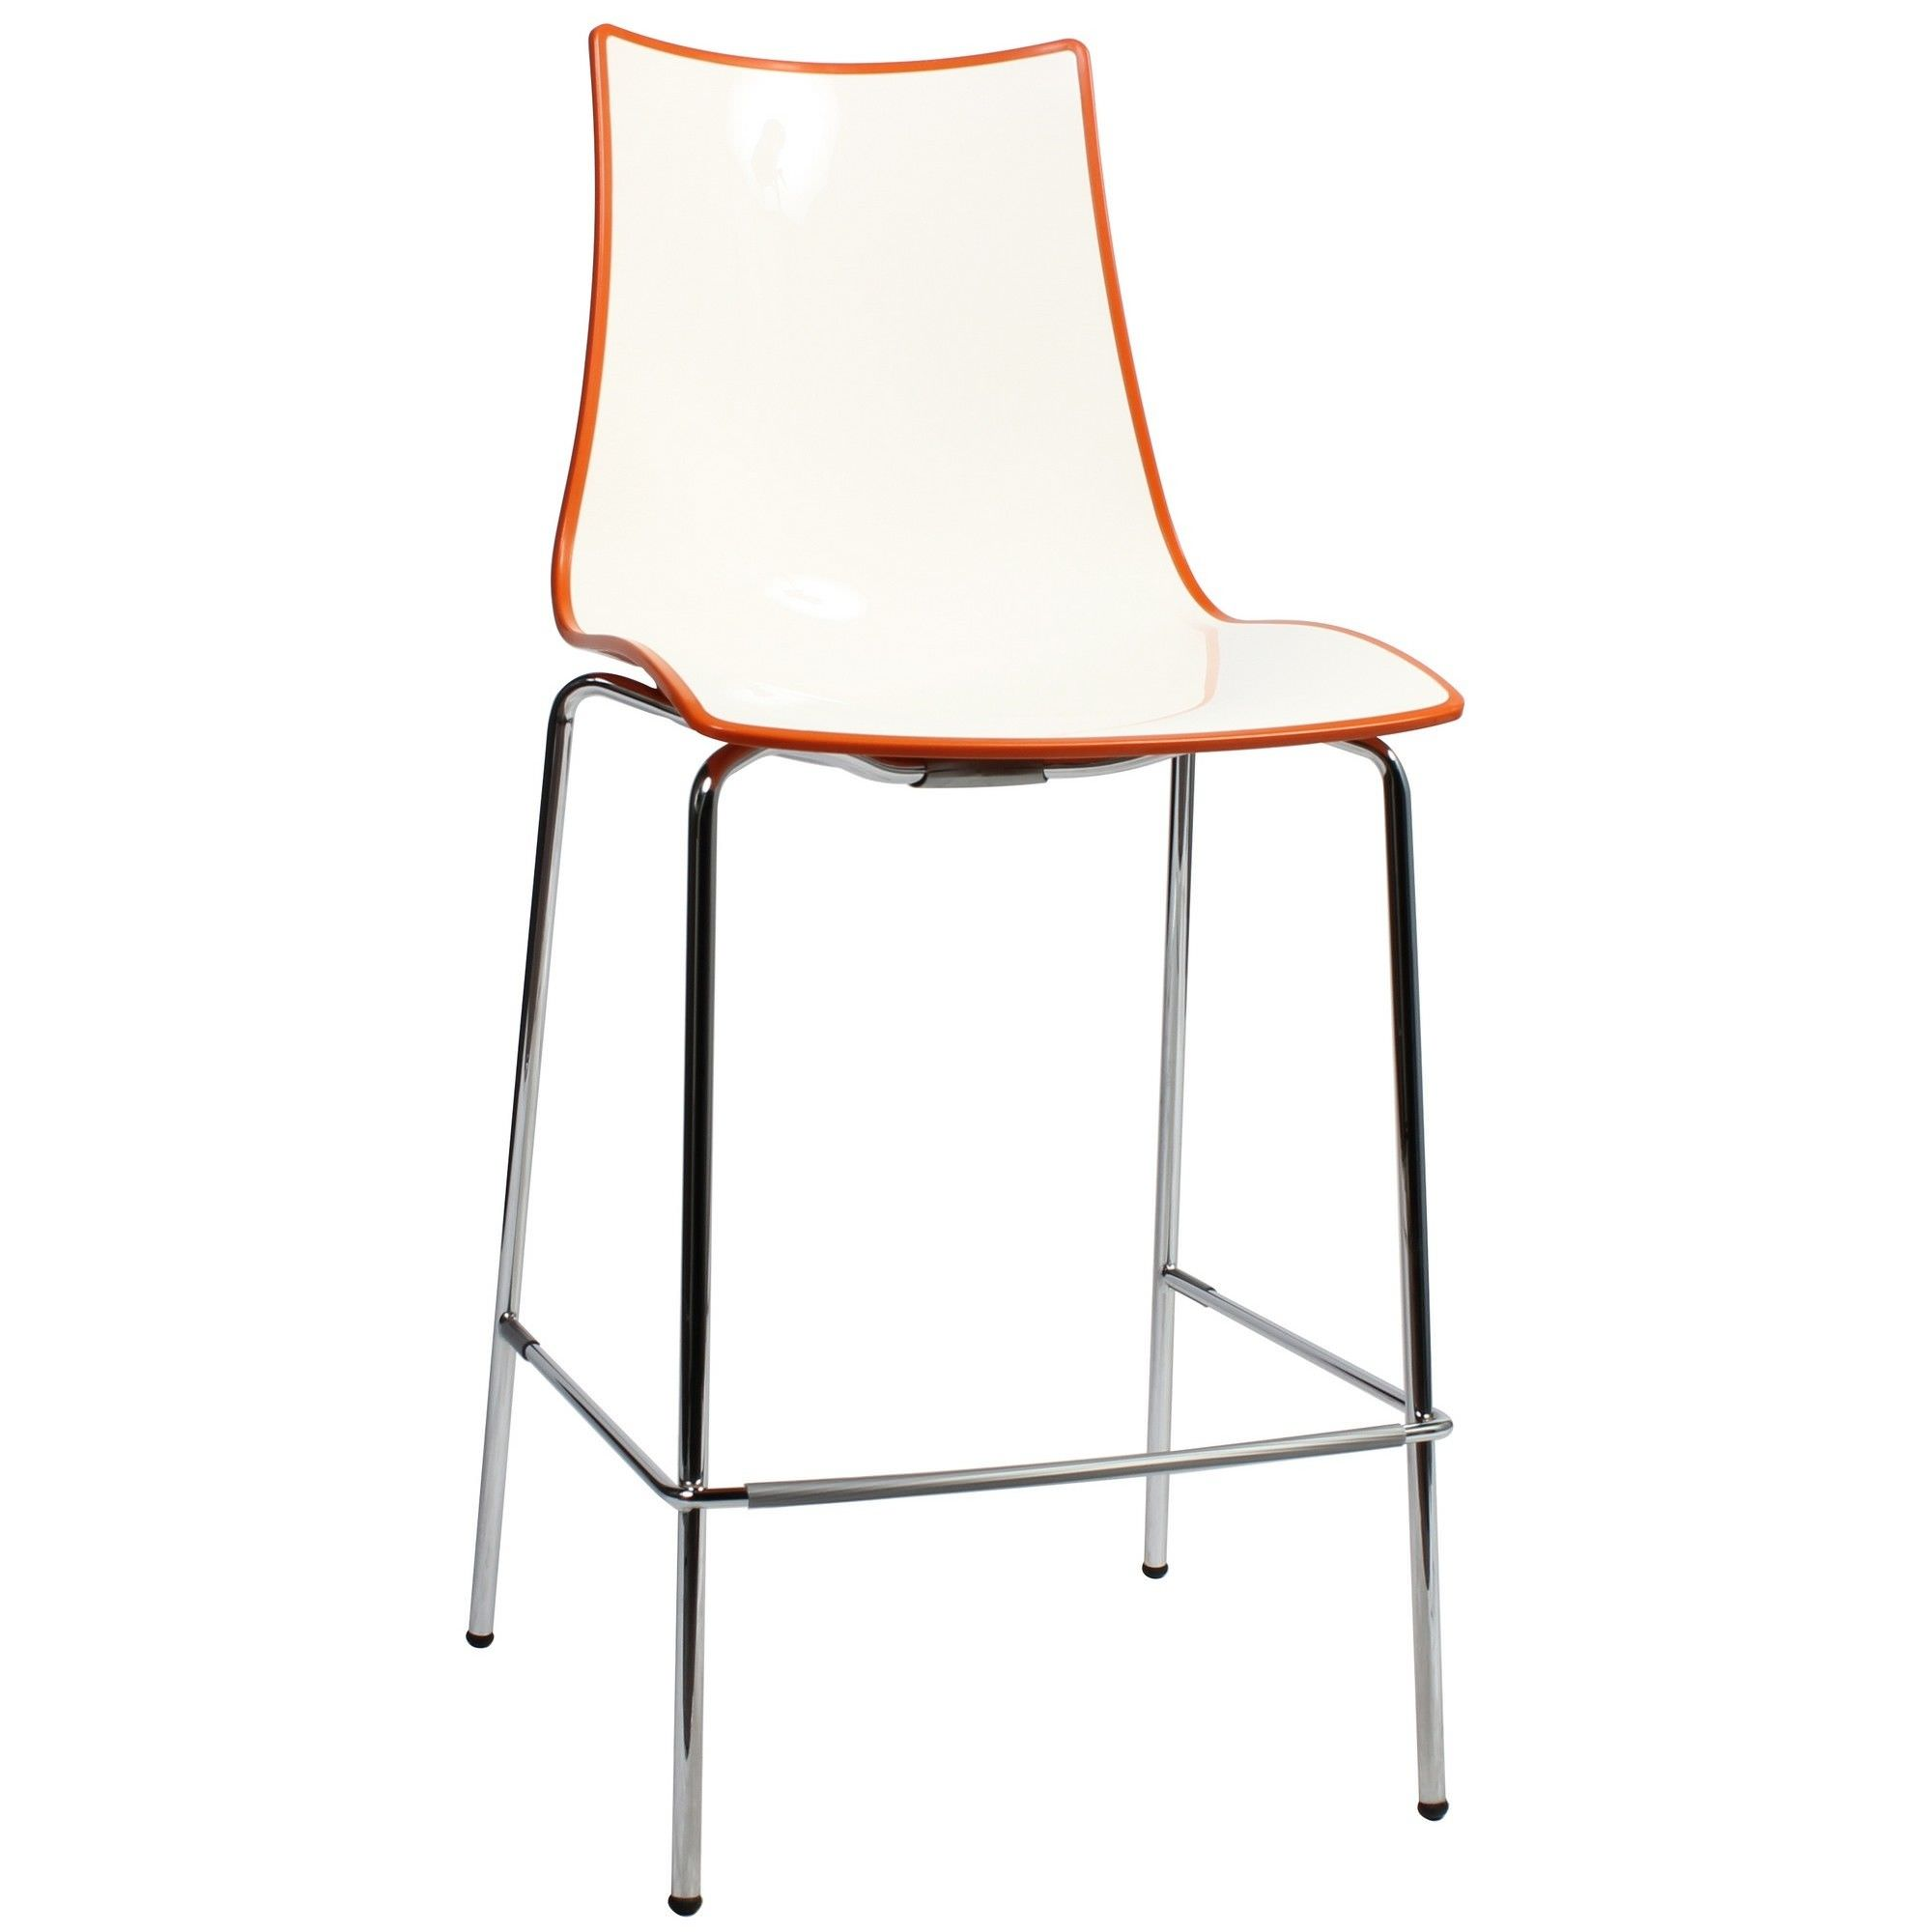 Zebra Bicolore Italian Made Commercial Grade Counter Stool, Metal Leg, Orange / Chrome